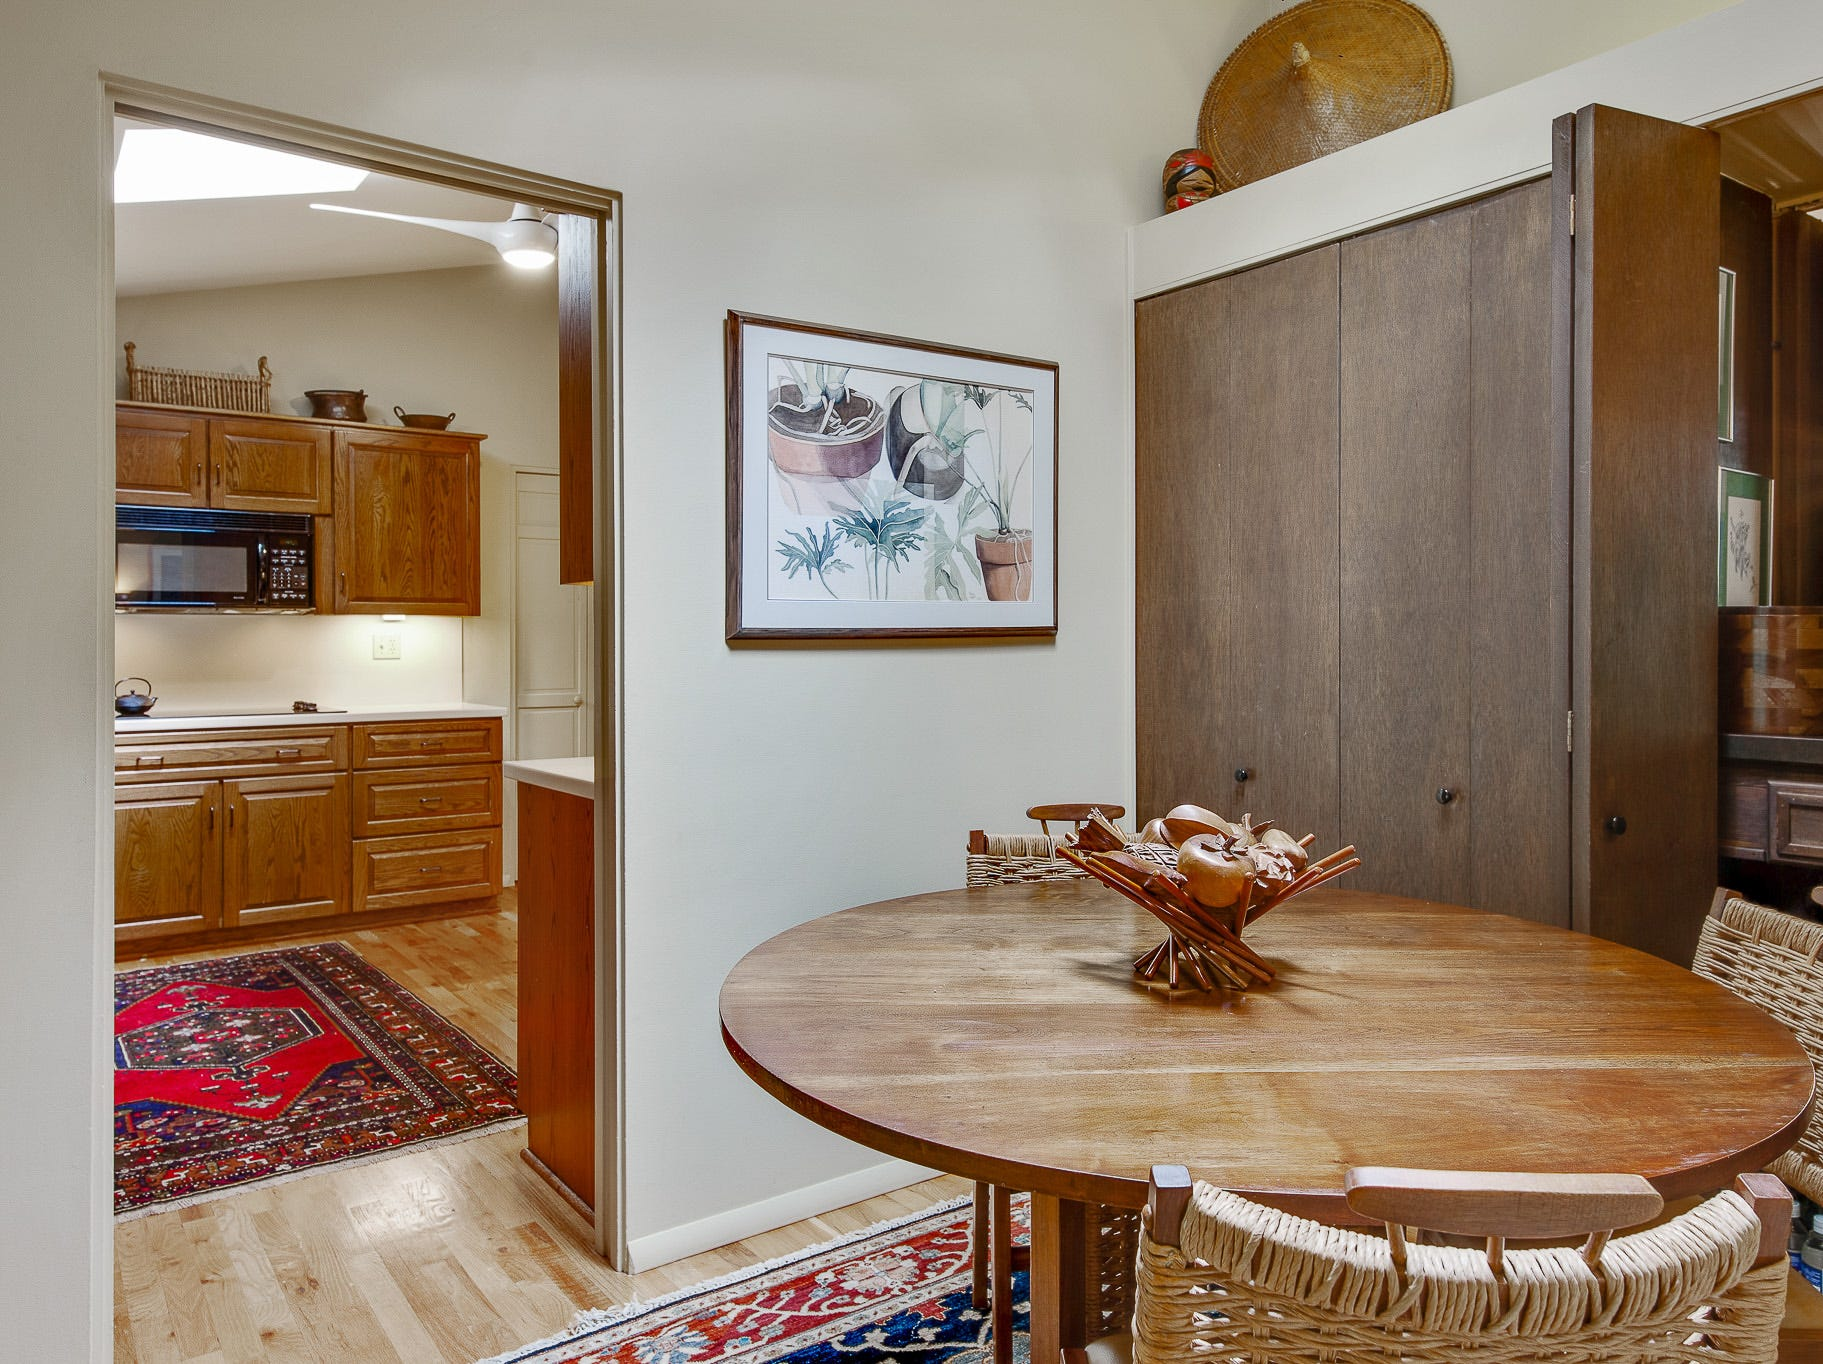 There's an informal dining area off the kitchen at 110 Thissell in Greenville.